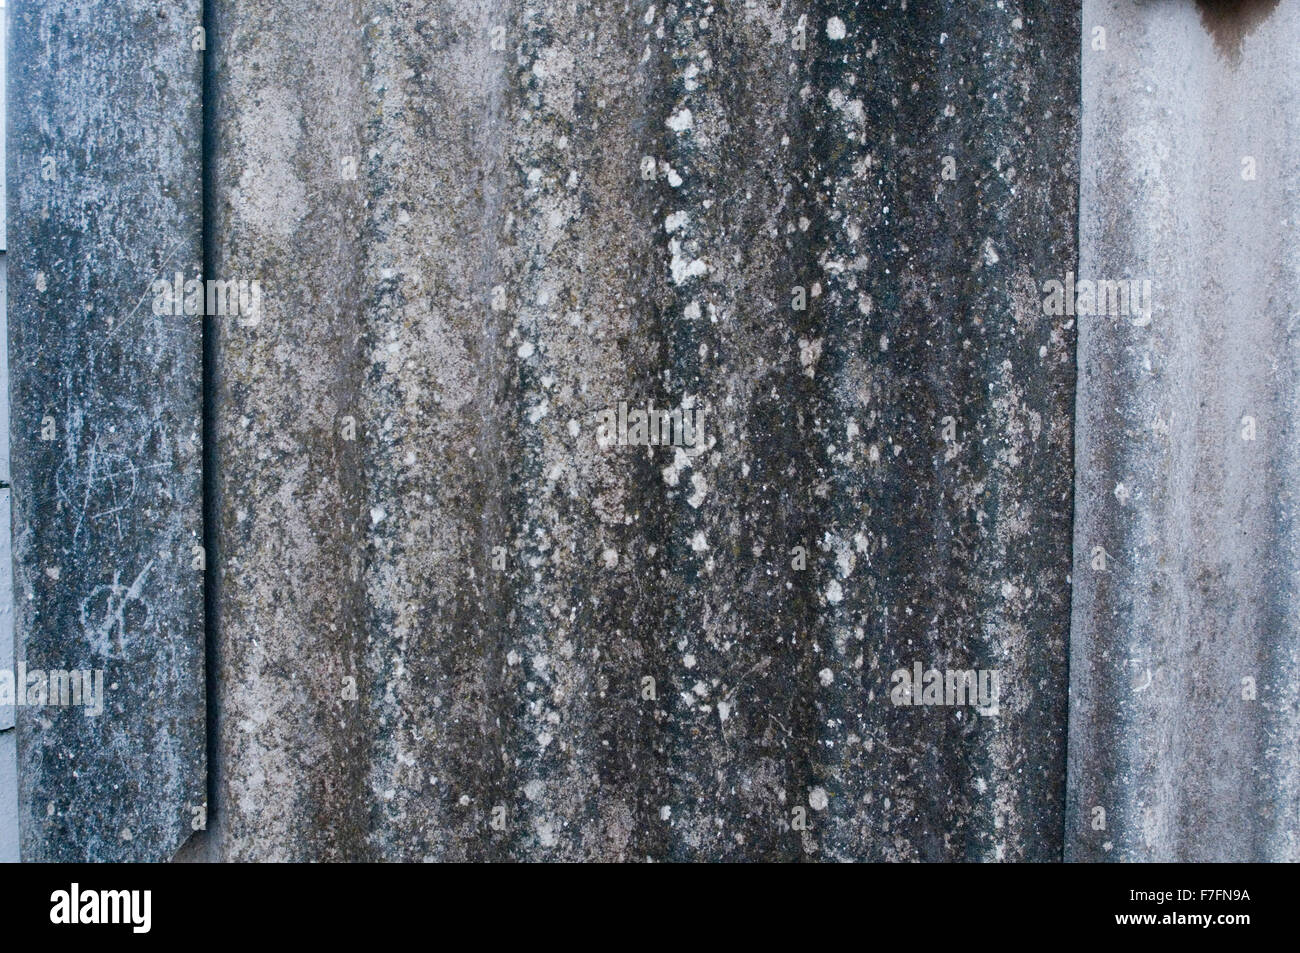 Asbestos removal removals corrugated sheet sheets building material materials specialists specialist lung cancer, - Stock Image